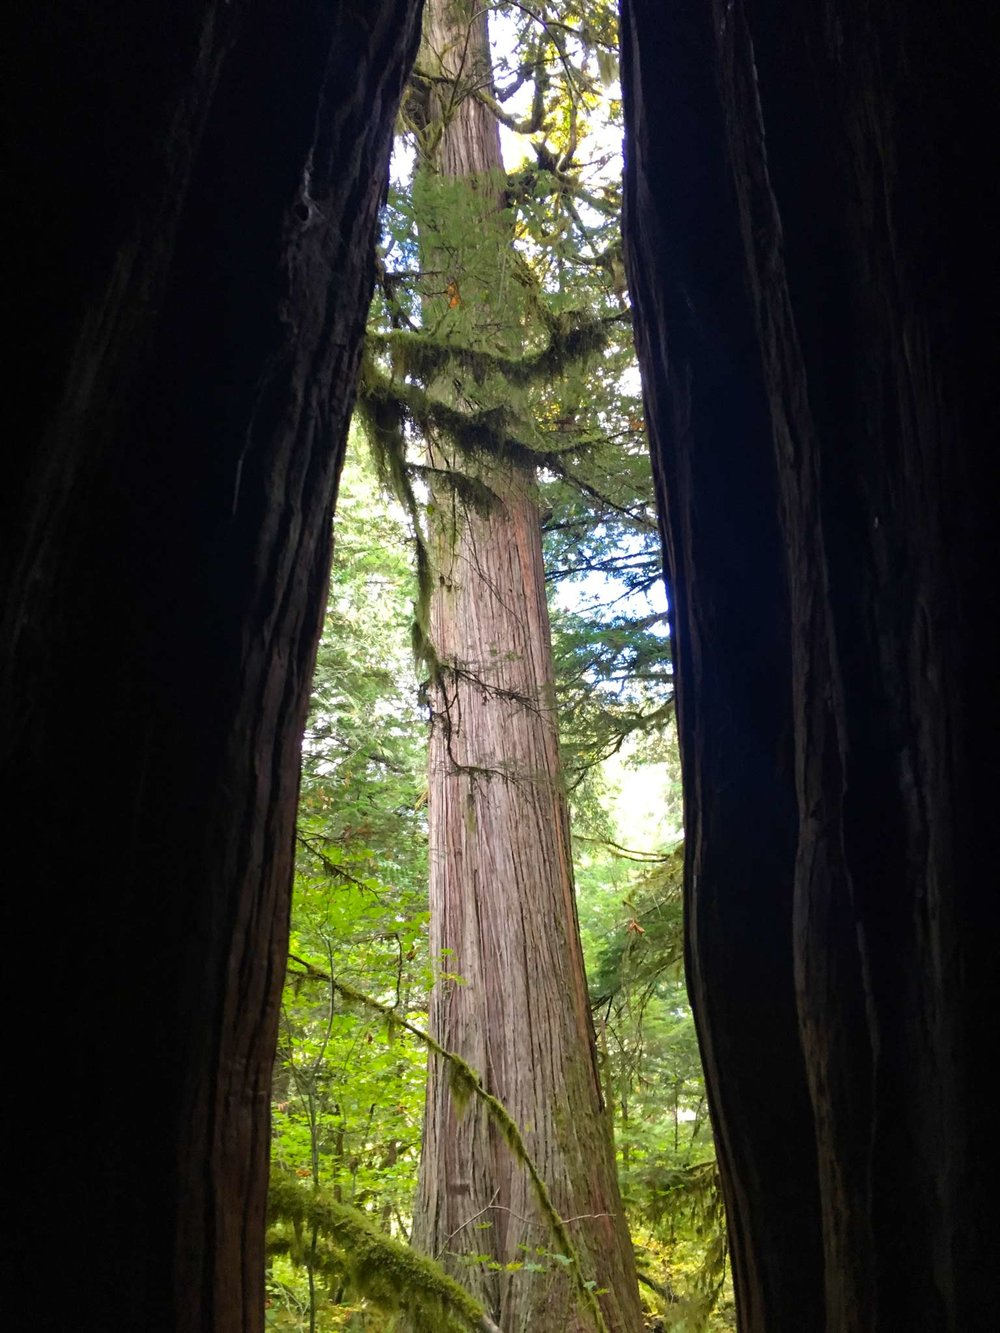 A tree from inside a tree, photo by Derek Wright.